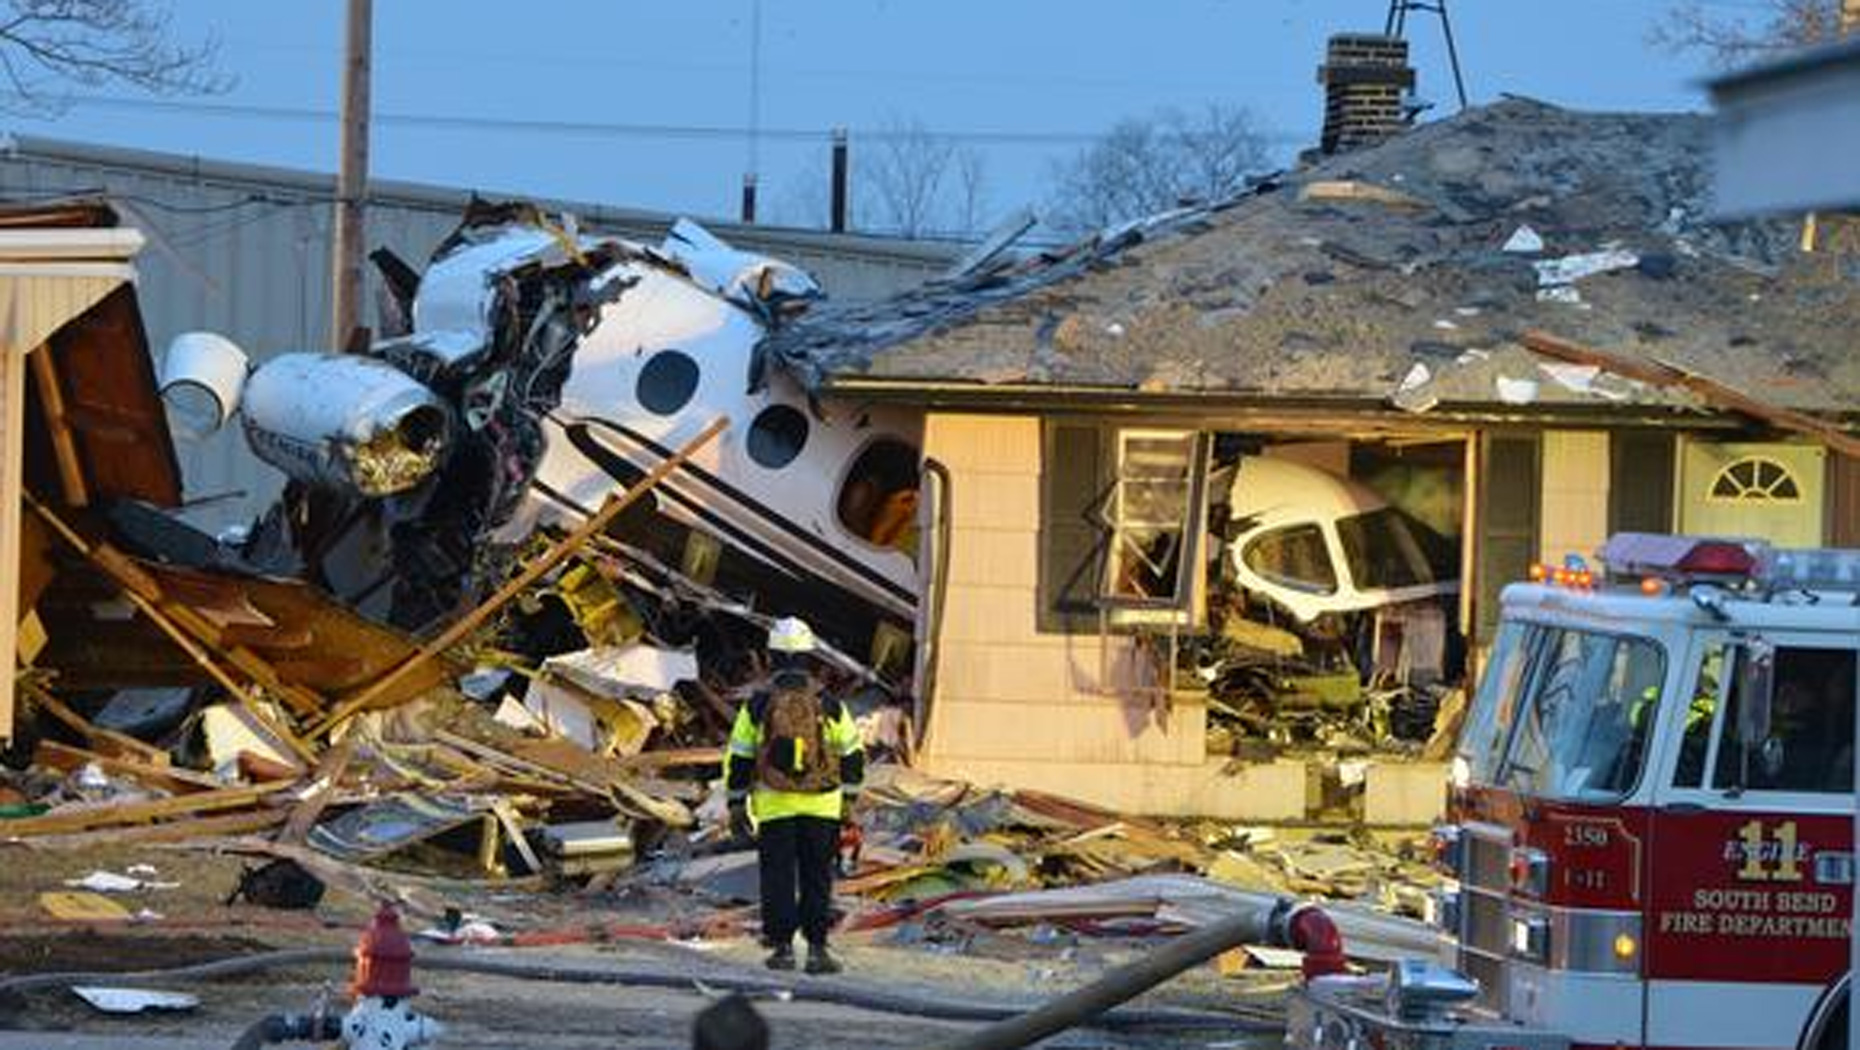 Jet crashes into Ind  houses, killing at least 2 - CBS News